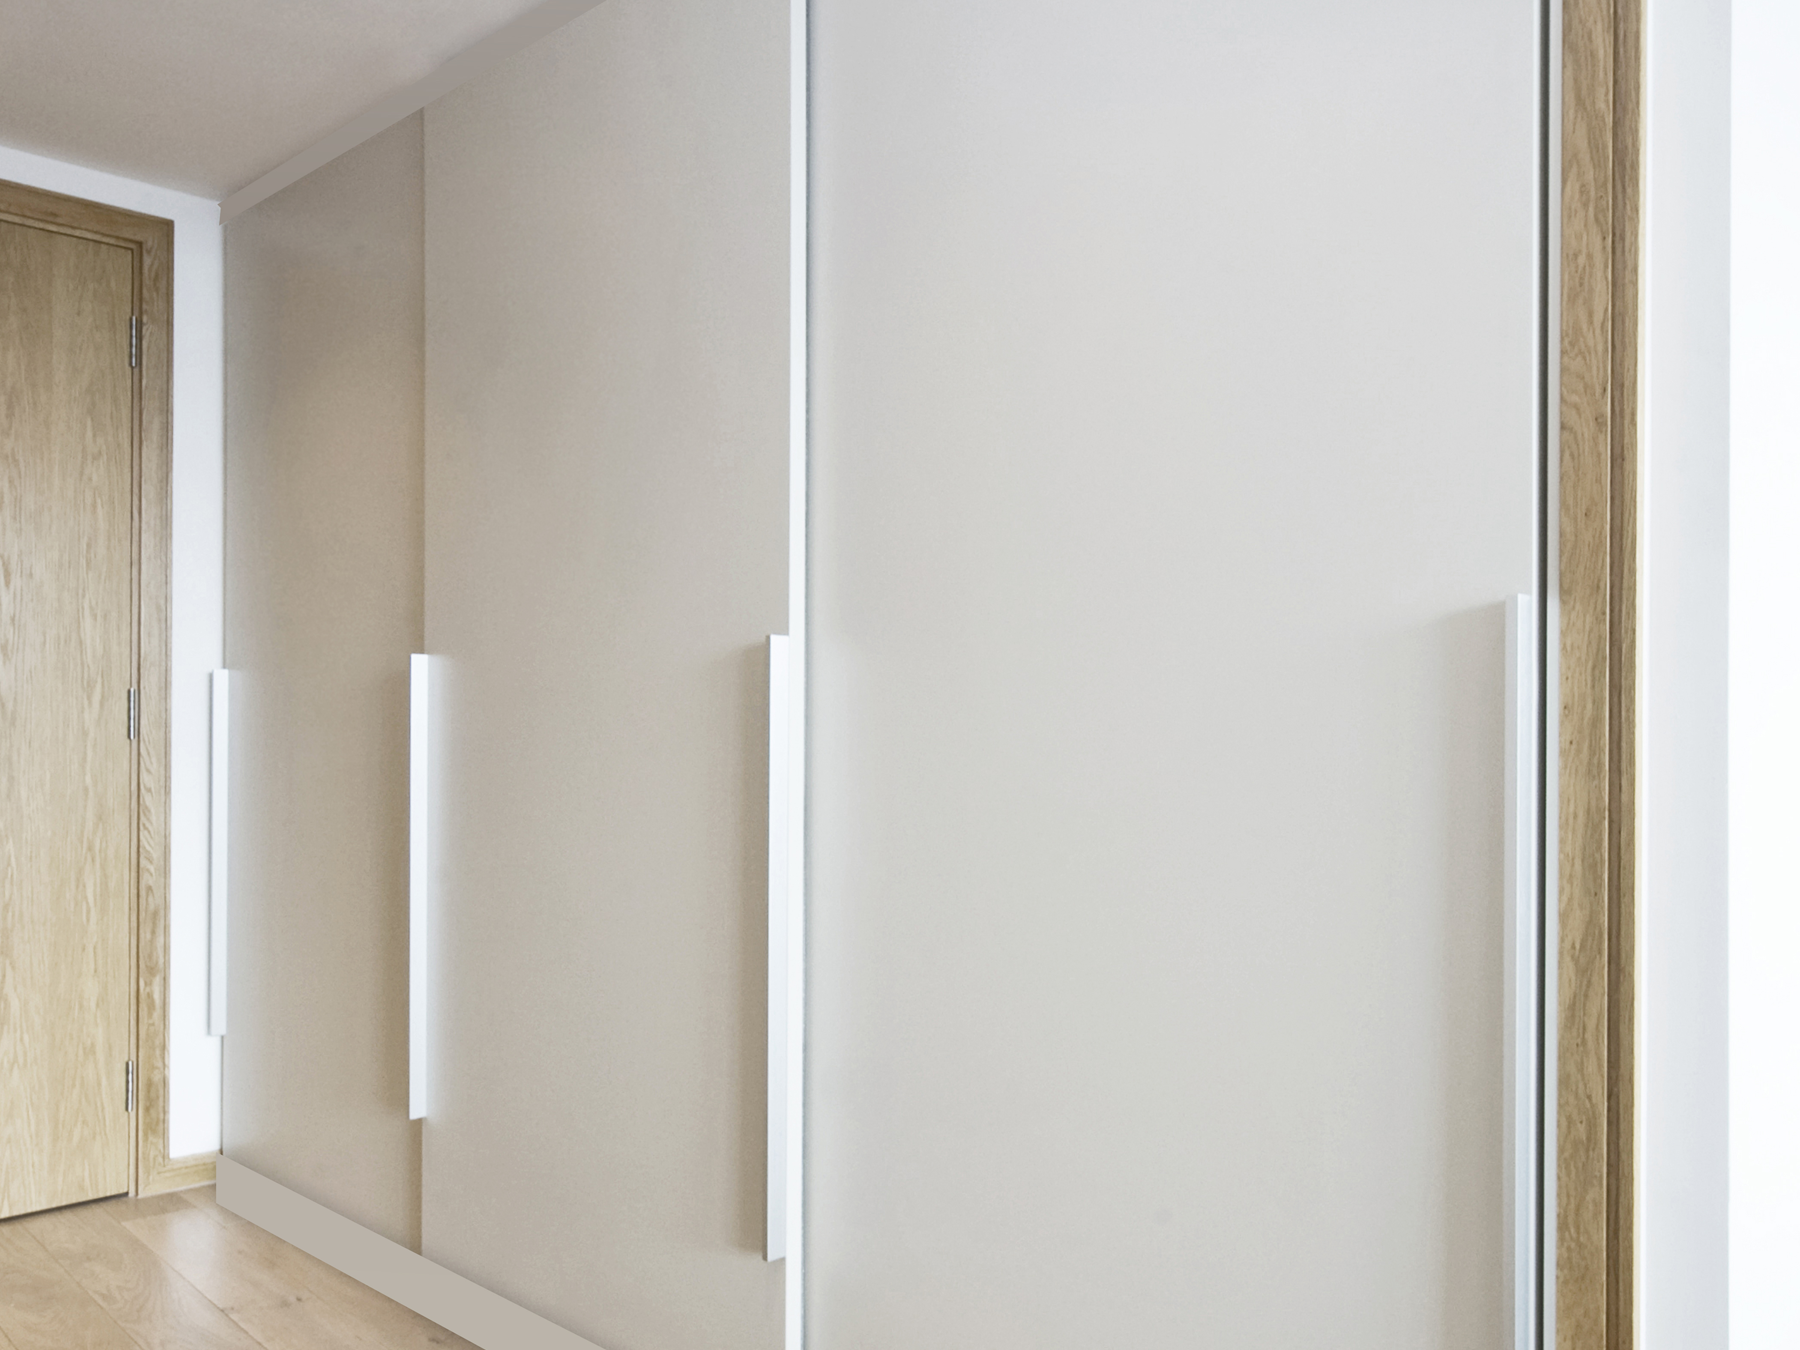 For Three Wardrobe Sliding Doors Helaform